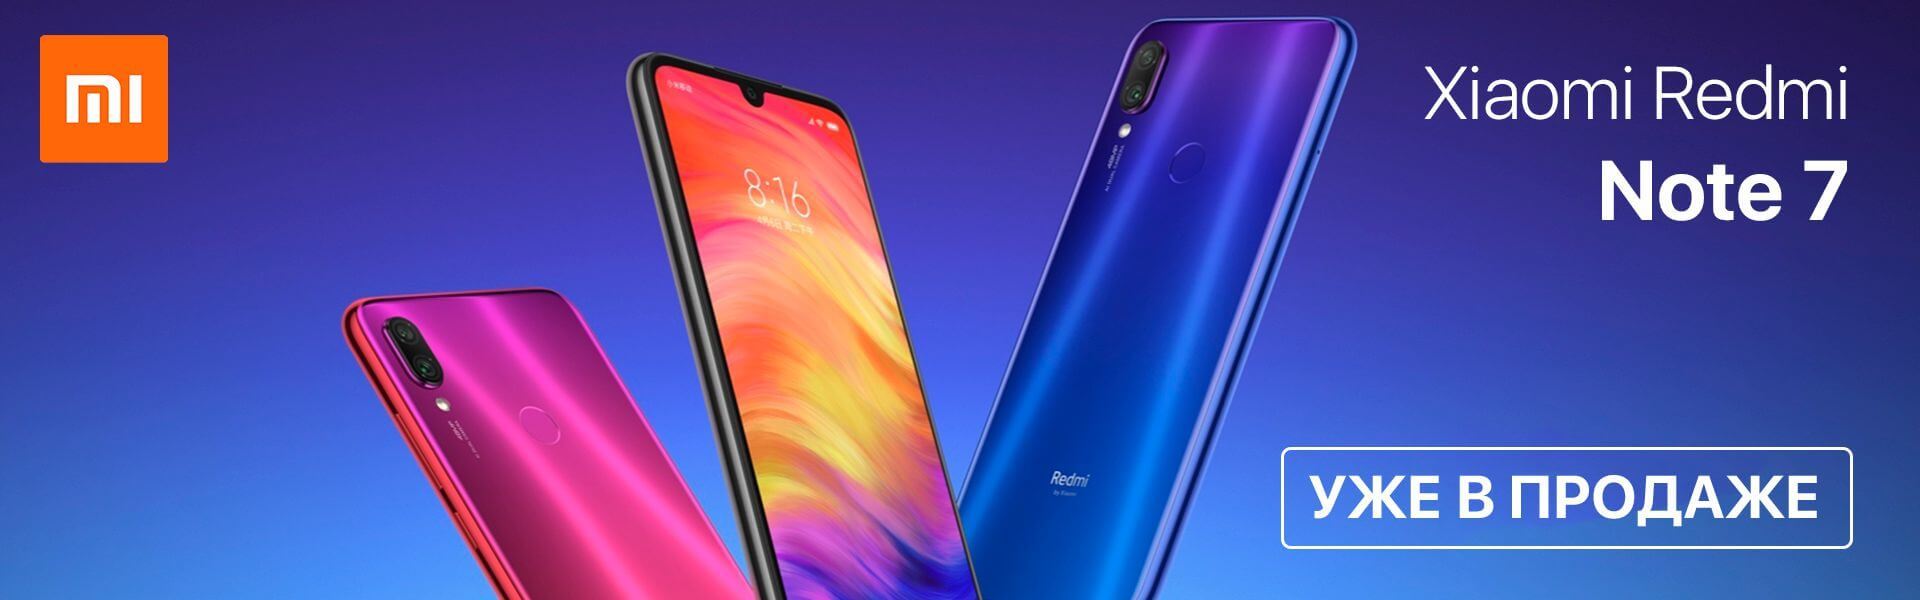 redmi_note7_promo